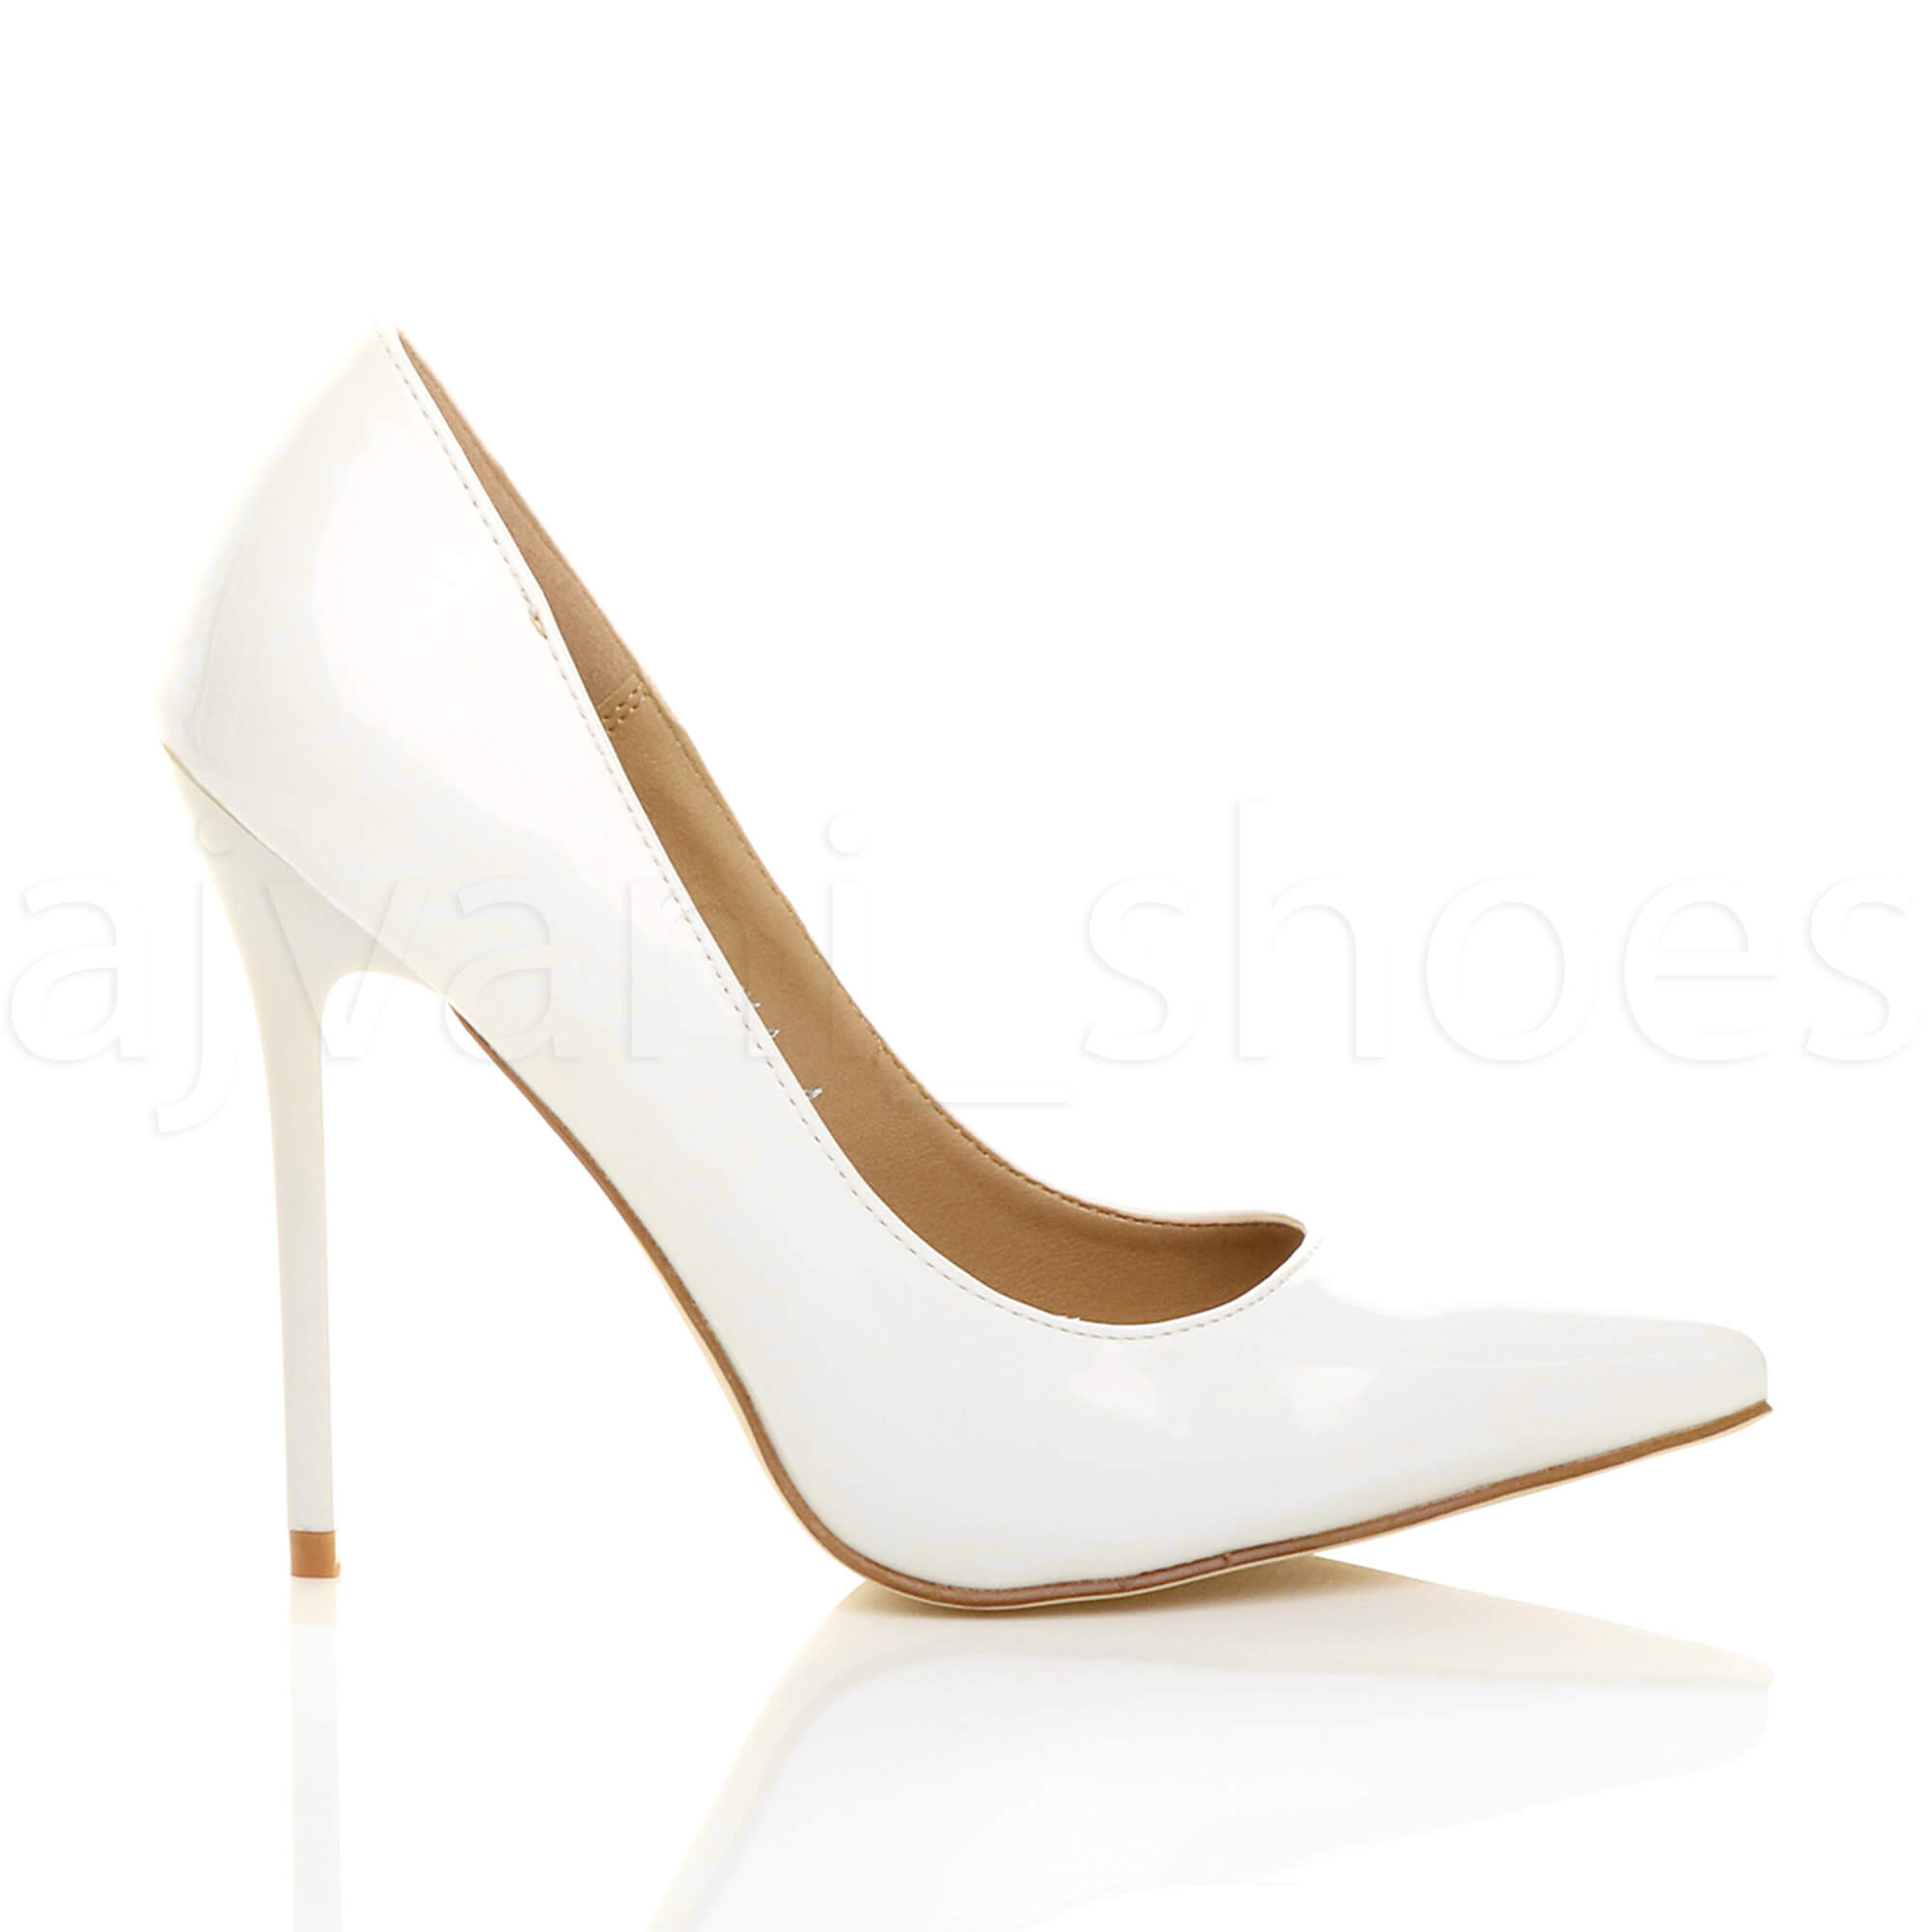 WOMENS-LADIES-HIGH-HEEL-POINTED-CONTRAST-COURT-SMART-PARTY-WORK-SHOES-PUMPS-SIZE thumbnail 224